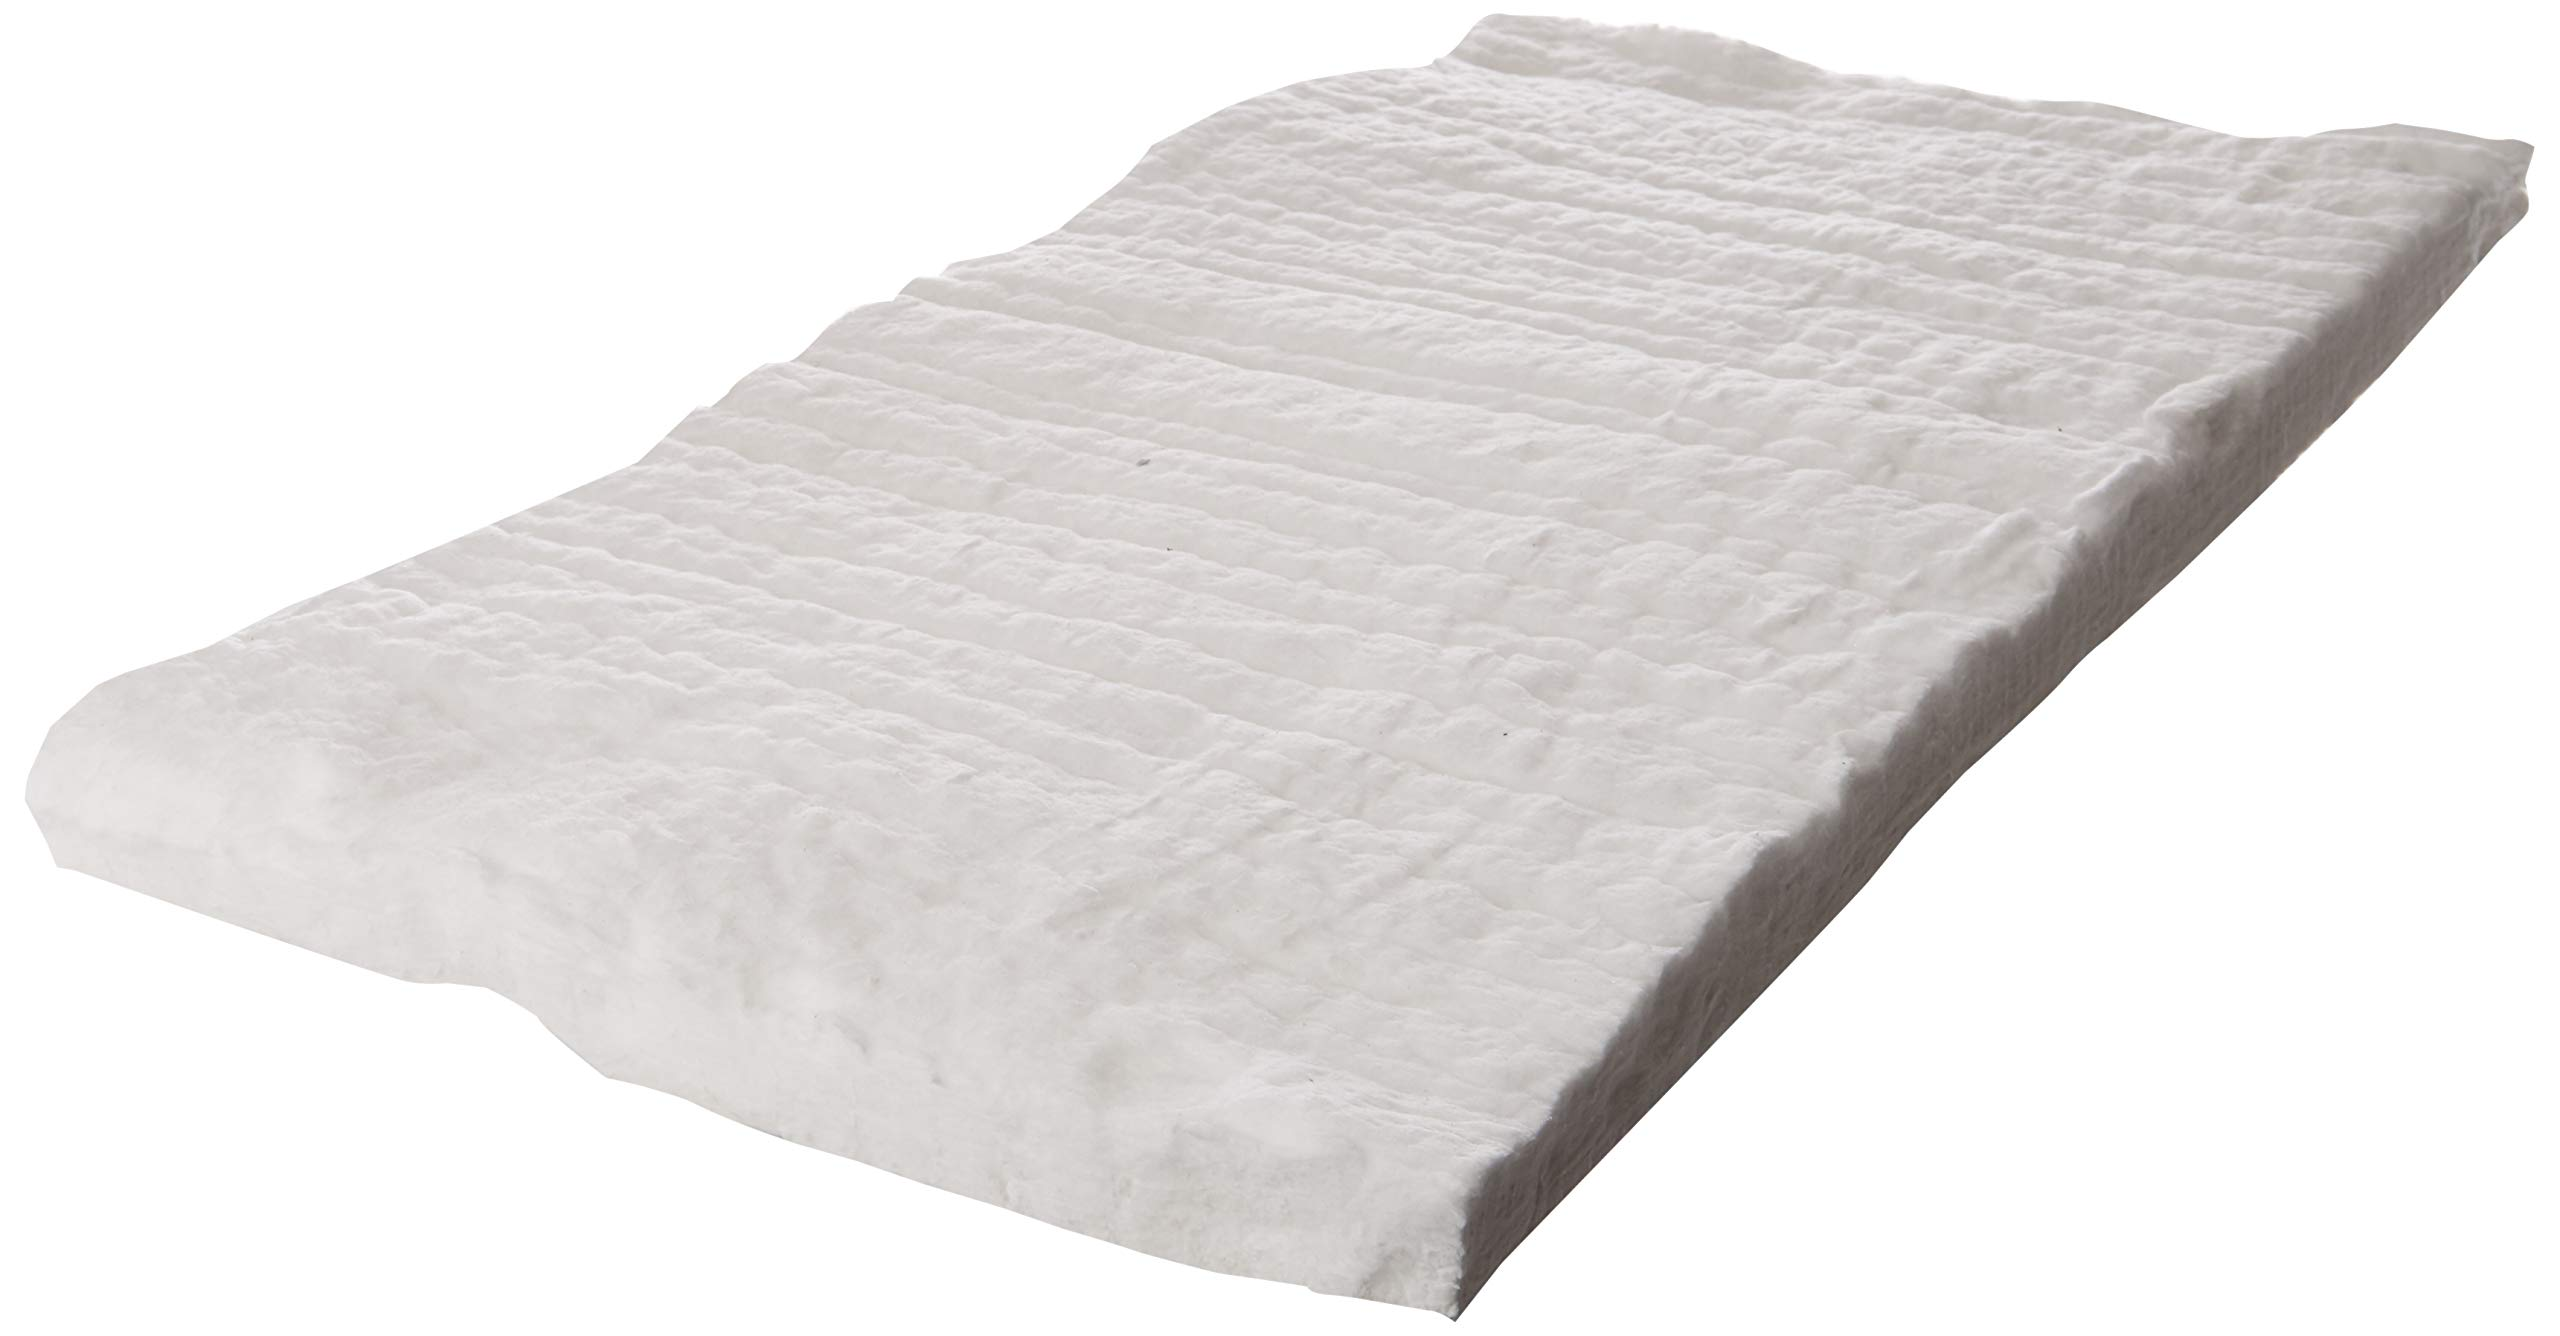 Ceramic Fiber Blanket - Insulation 24'' X 12'' X 1'' for Wood Stoves, Pizza Ovens, Kilns, Forges & More - 6# Pound 2300 Degrees by CeramaFiber